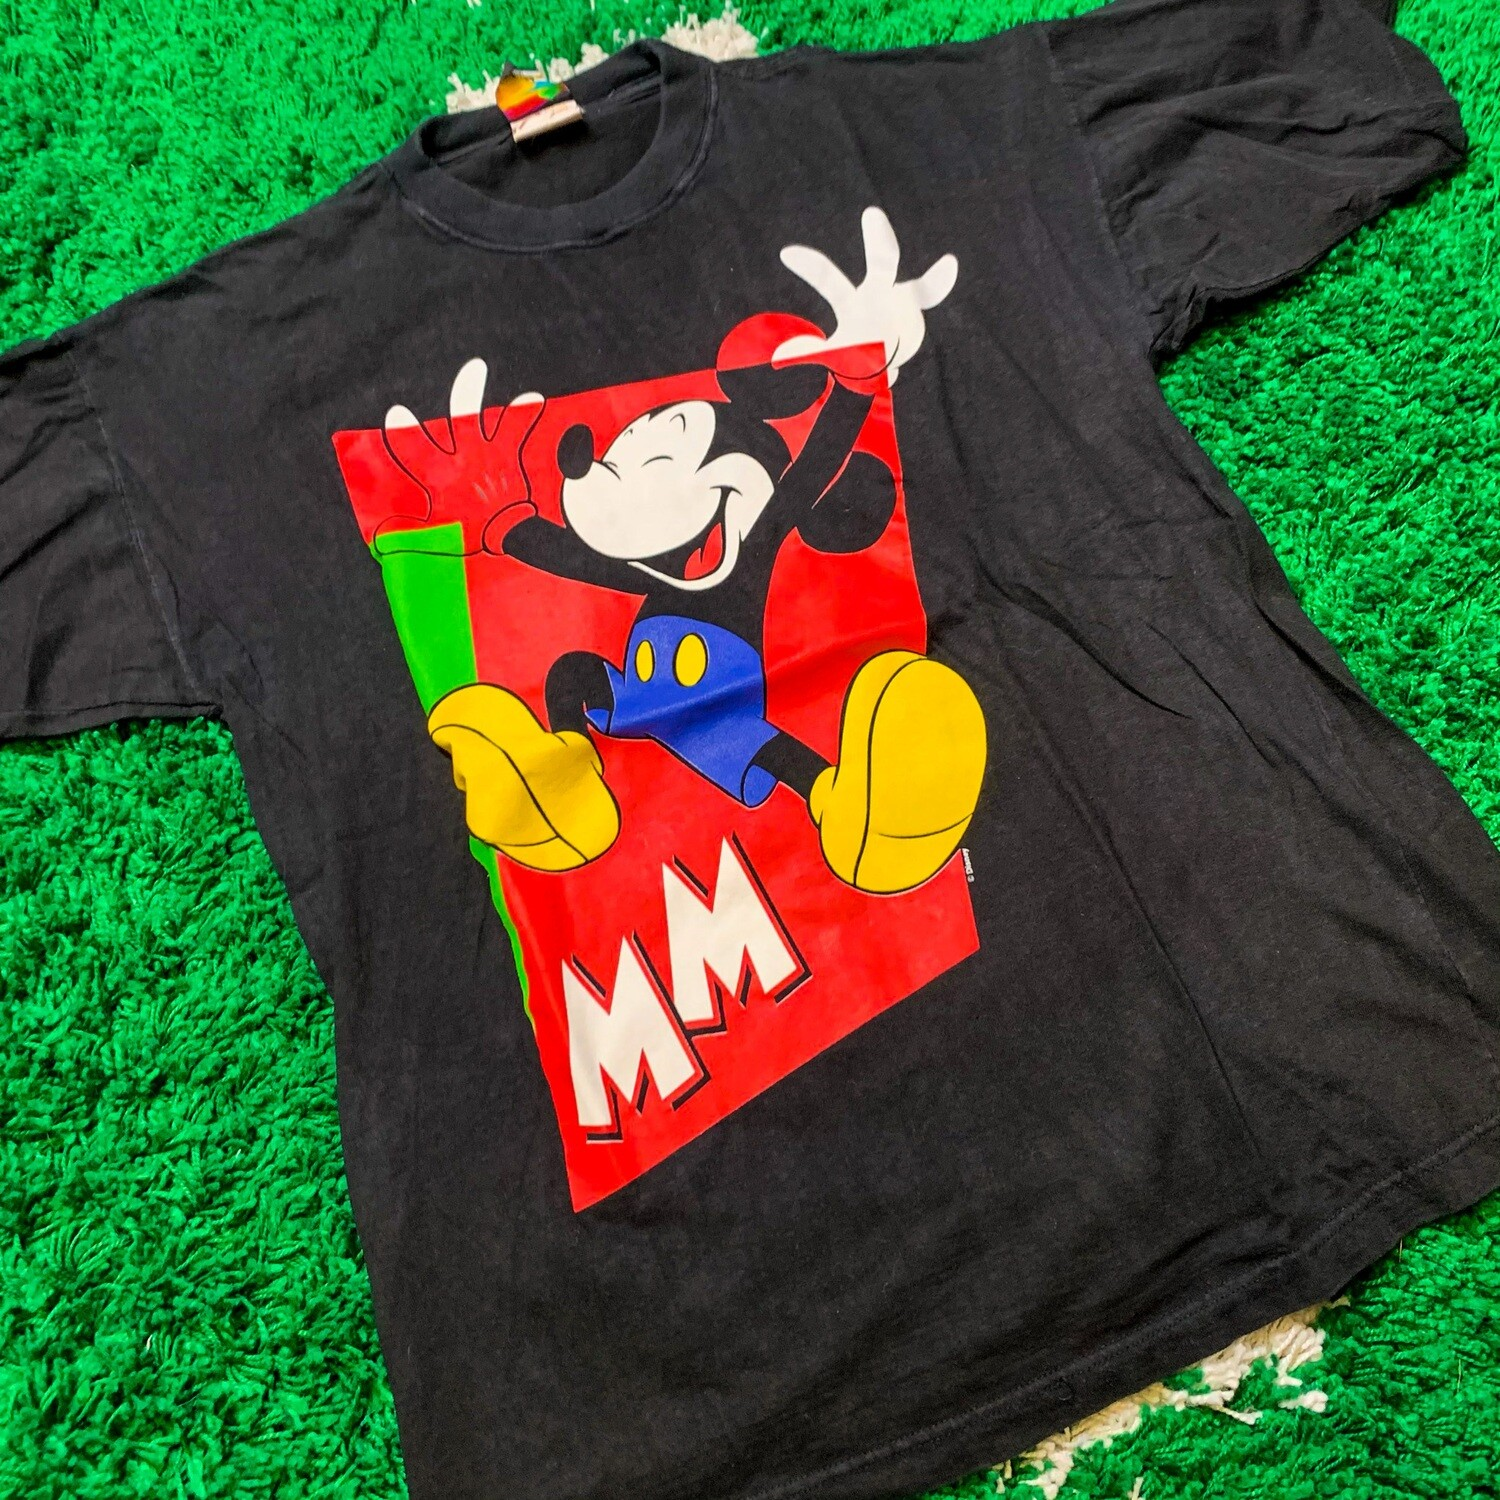 Mickey Mouse MM Tee Size Large